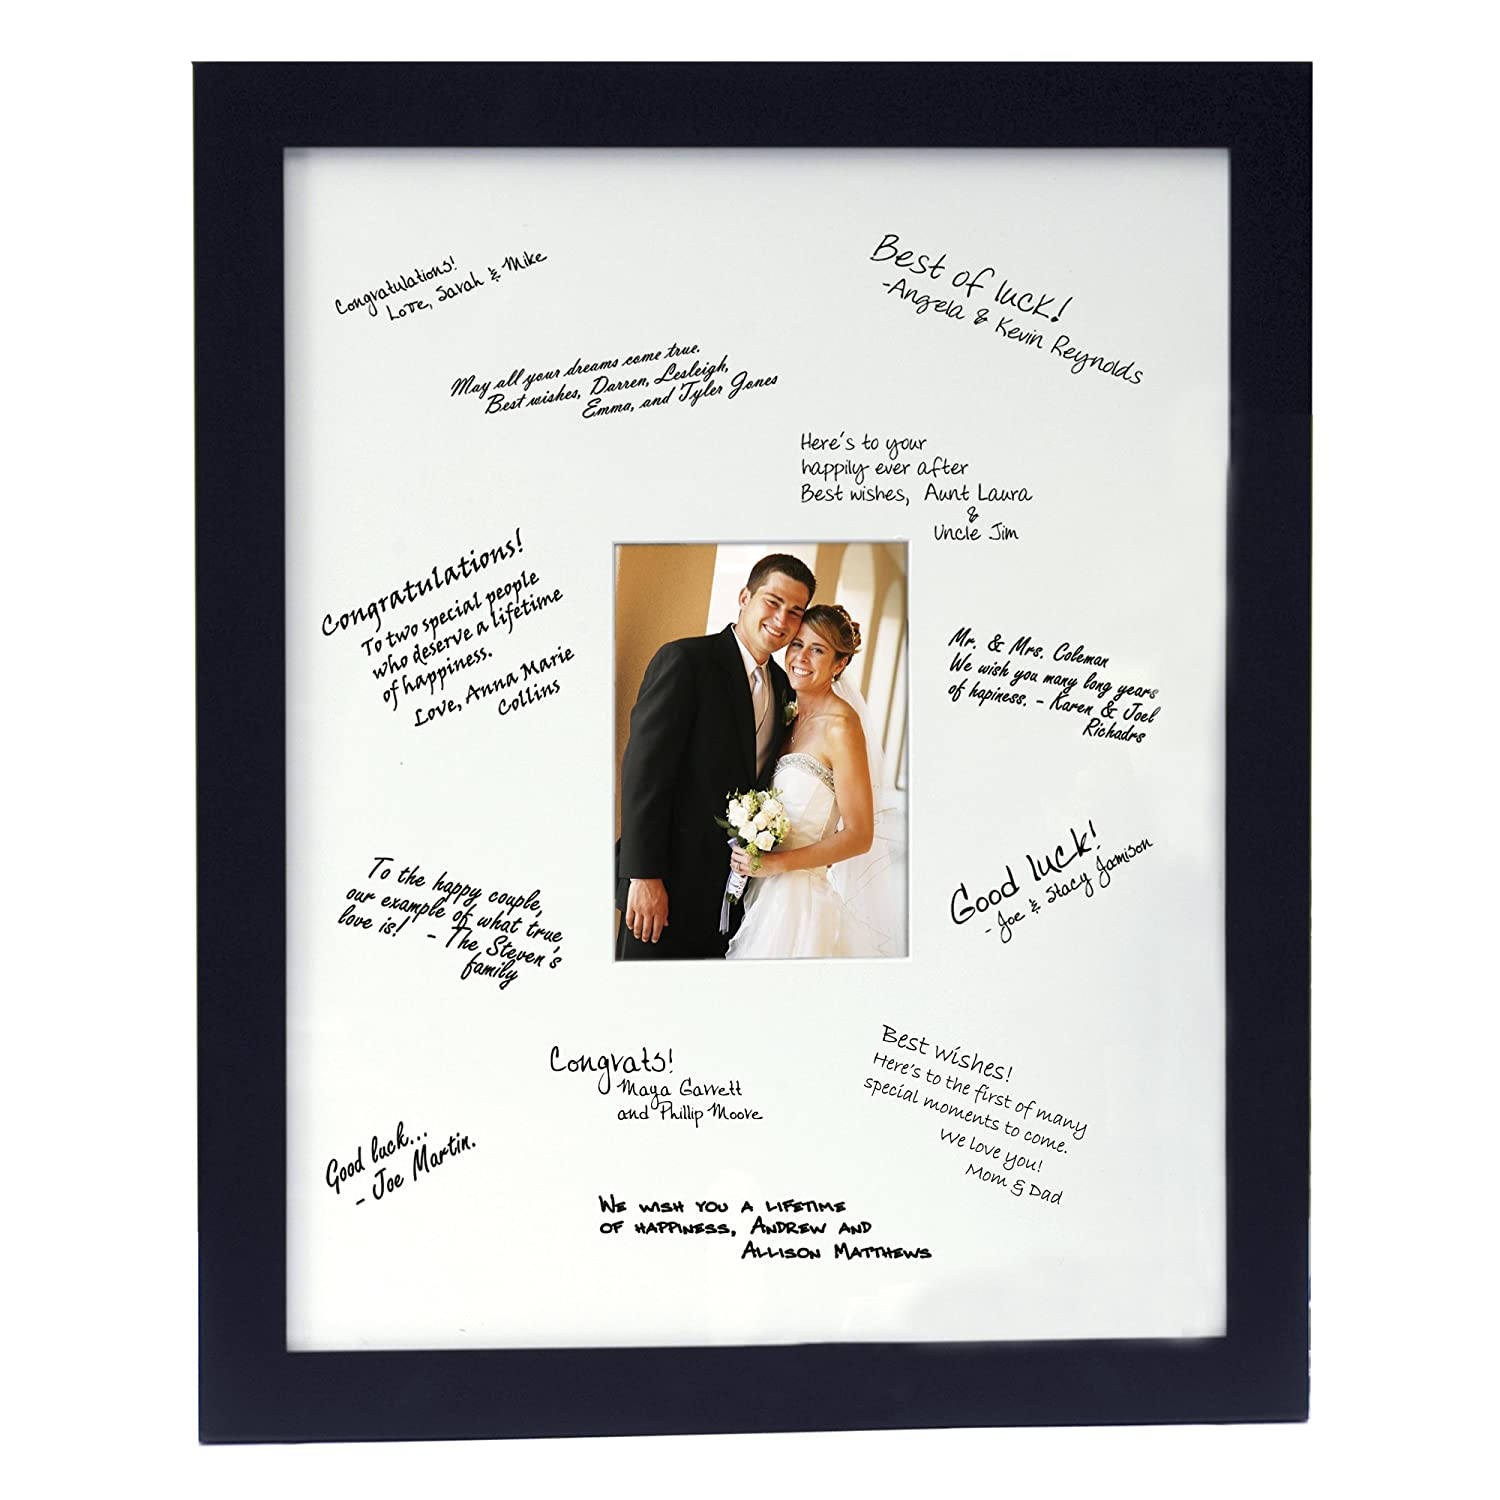 Amazon personalized guest book frame black18 by 22 amazon personalized guest book frame black18 by 22 guest book photo frames jeuxipadfo Images